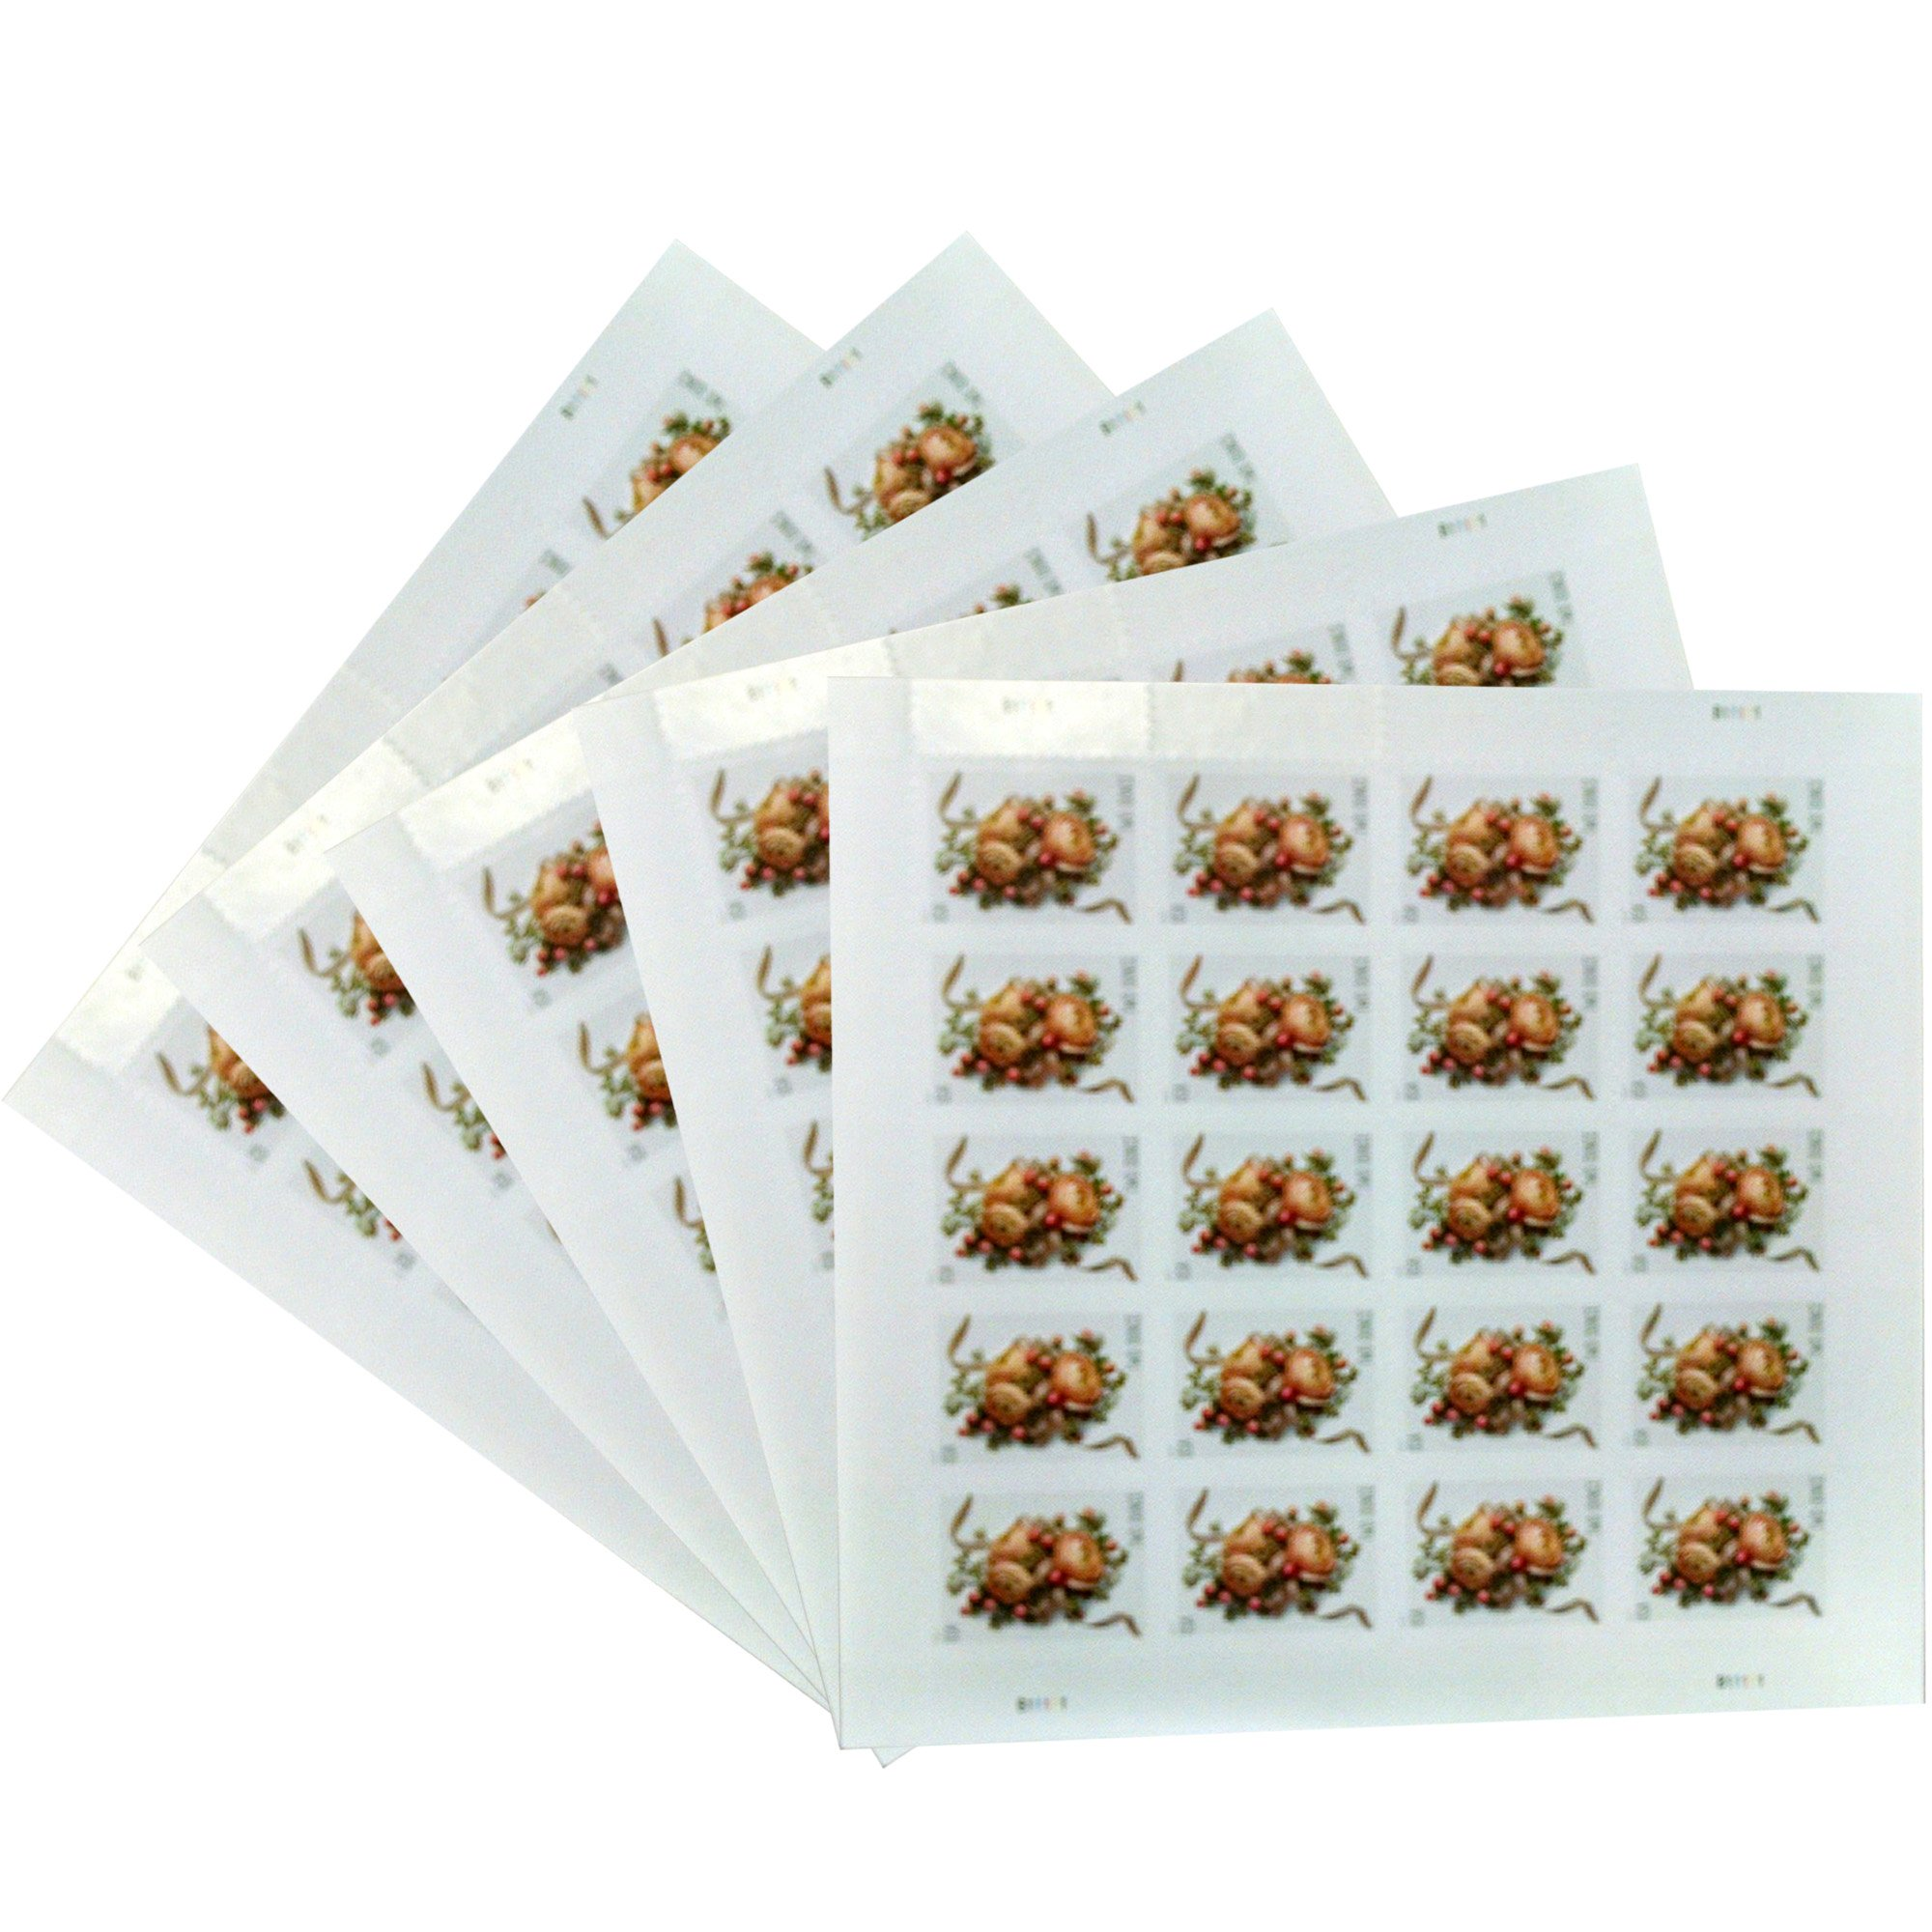 Celebration Corsage Sheet of 20 USPS Forever First Class Two Ounce Stamps Wedding Mother's Day Proms (5 Sheets of 20 Stamps) by USPS (Image #1)